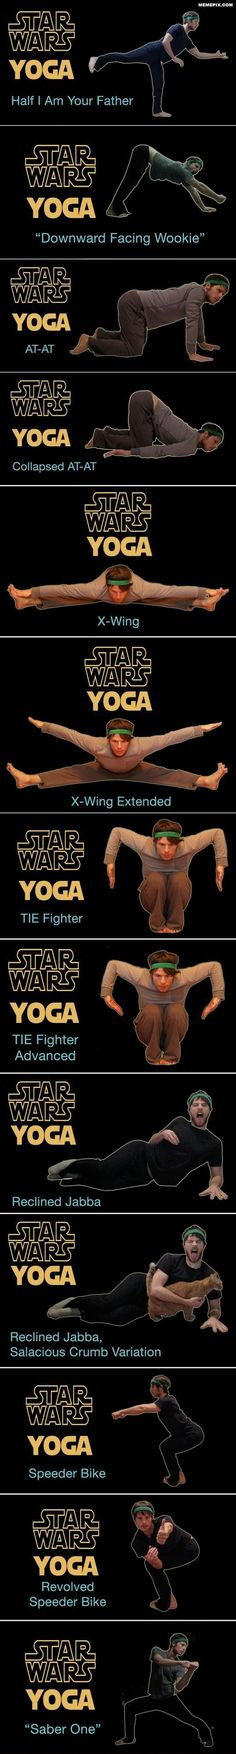 Star Wars Yoga - MemePix